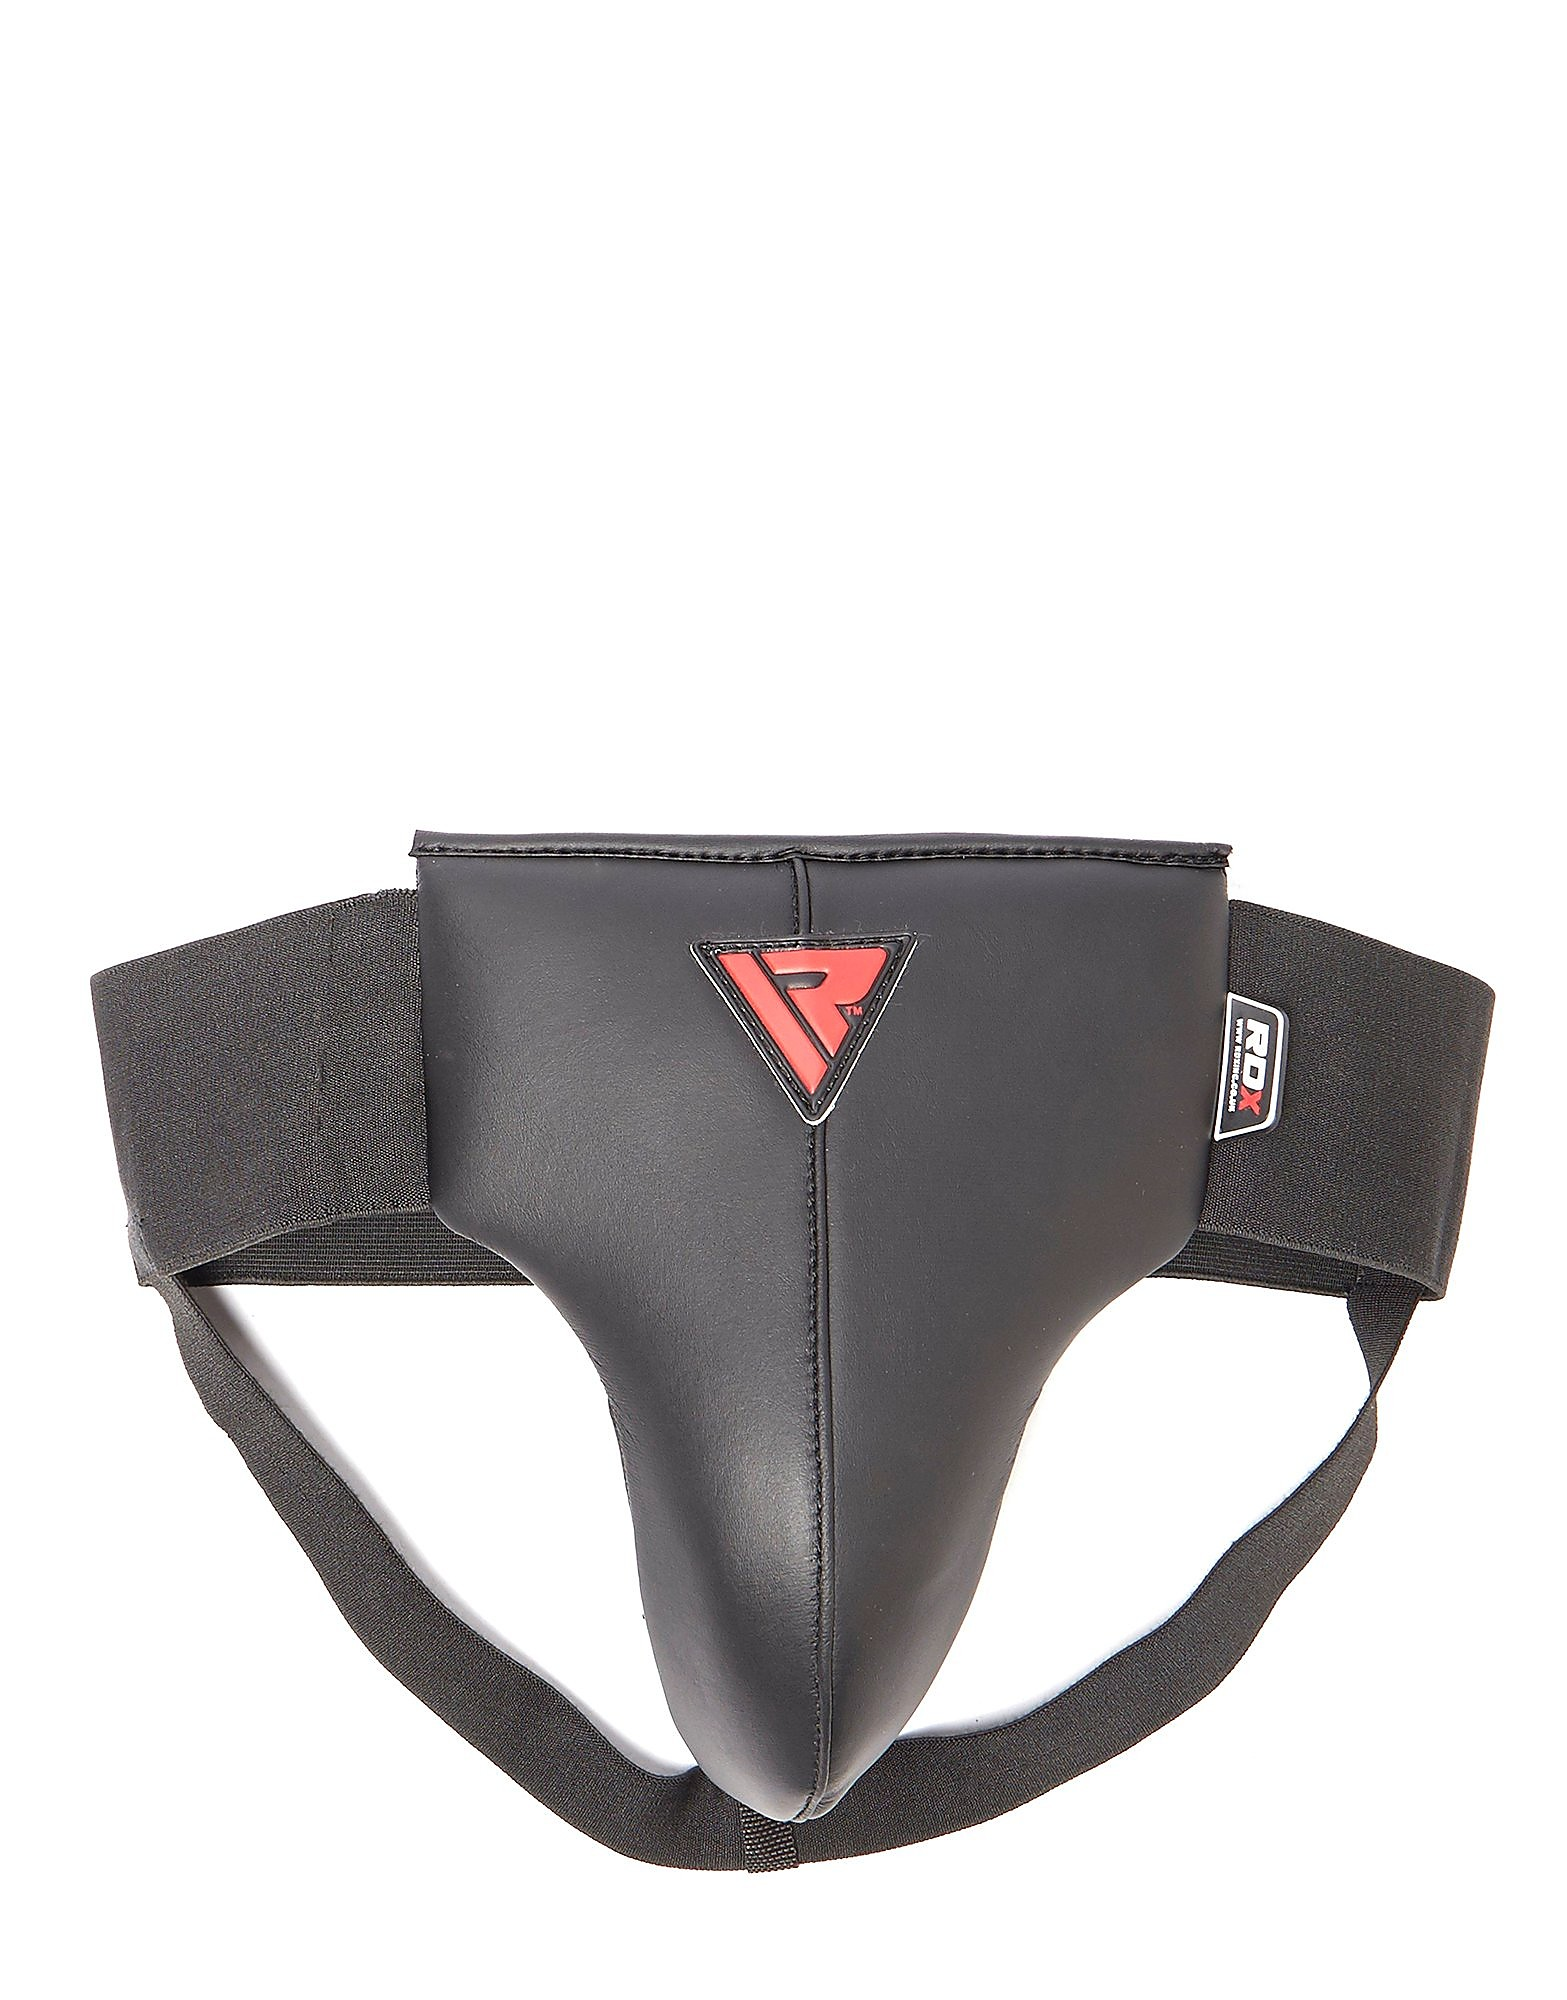 RDX INC Leather-X Groin Guard Protector